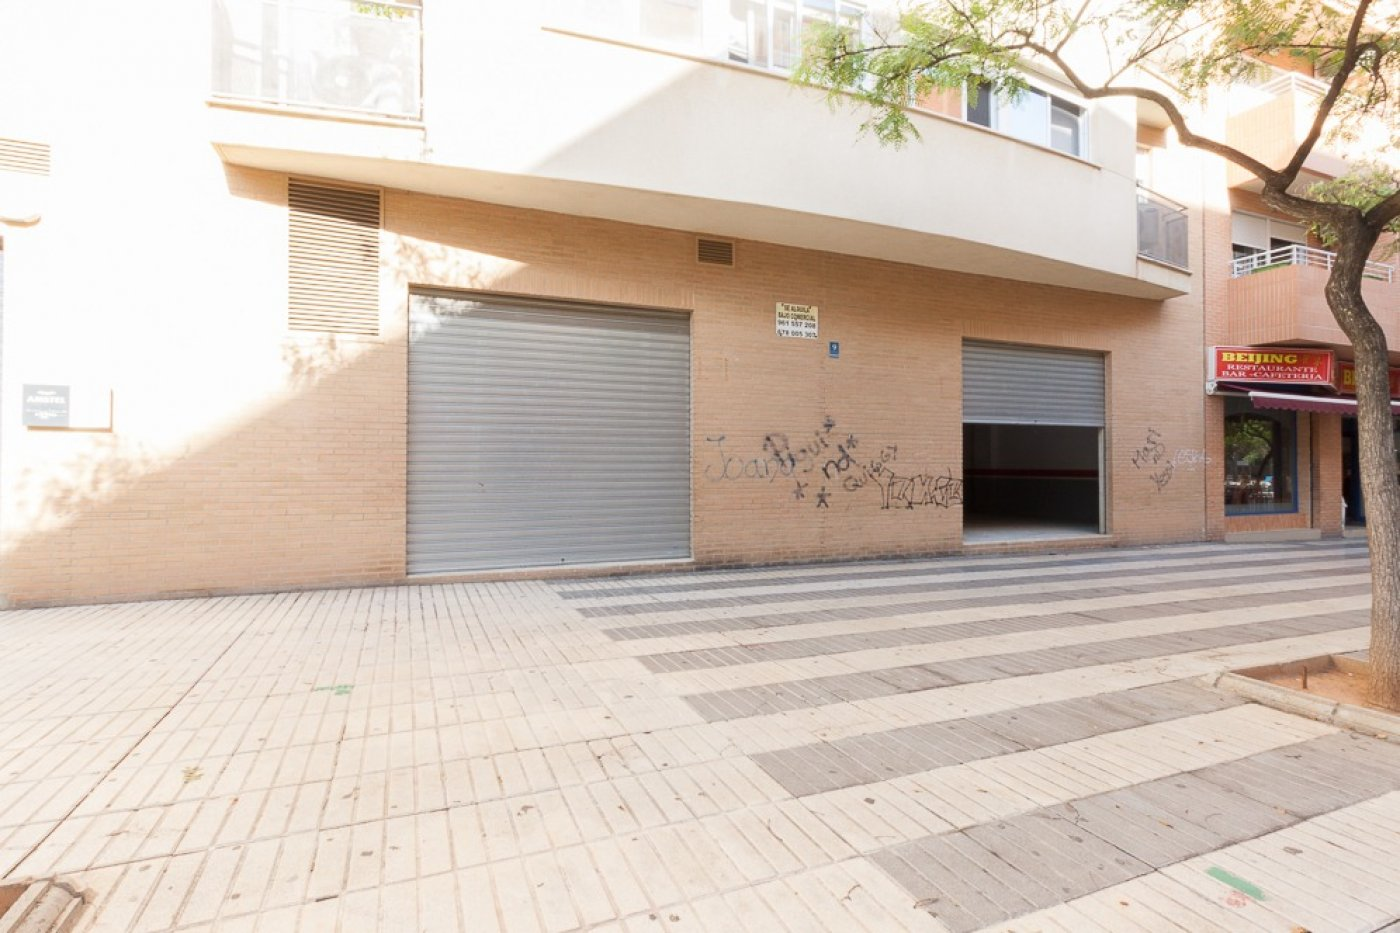 local-comercial en torrent · el-moli 990€